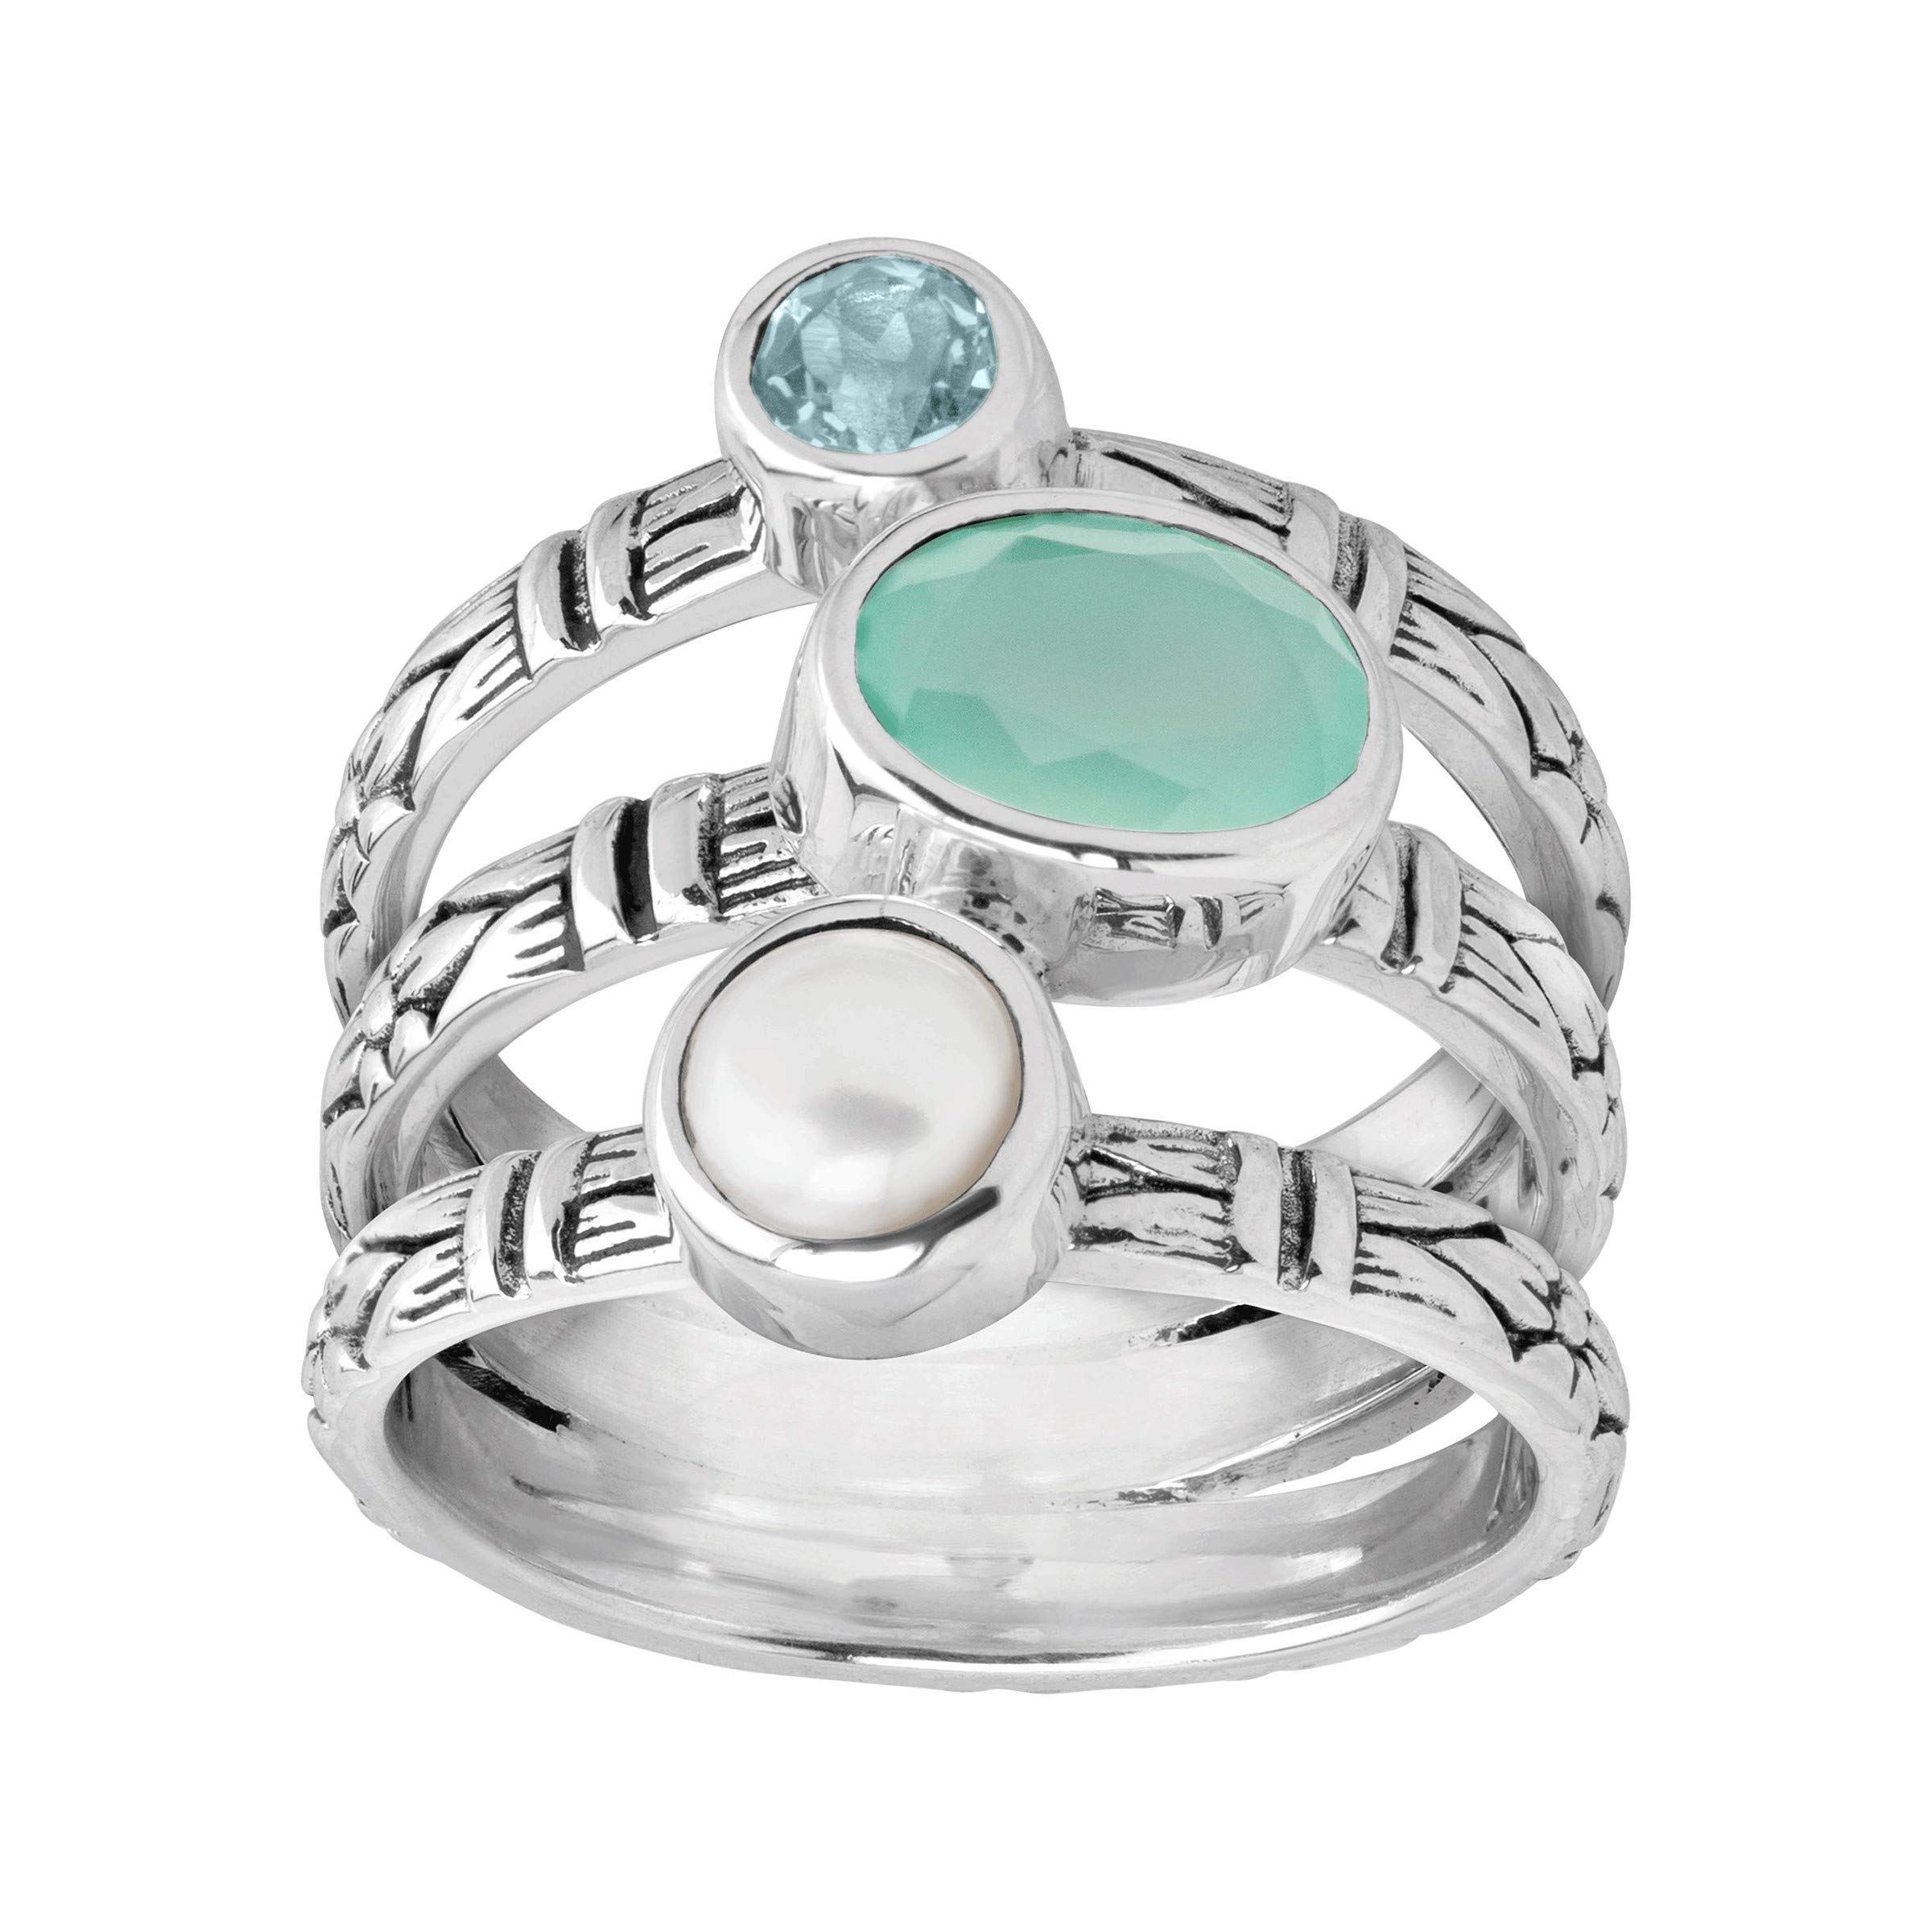 Silpada 'Metamorphosis' Freshwater Cultured Pearl, Natural Chalcedony & Blue Topaz Layered Ring in Sterling Silver Size 6